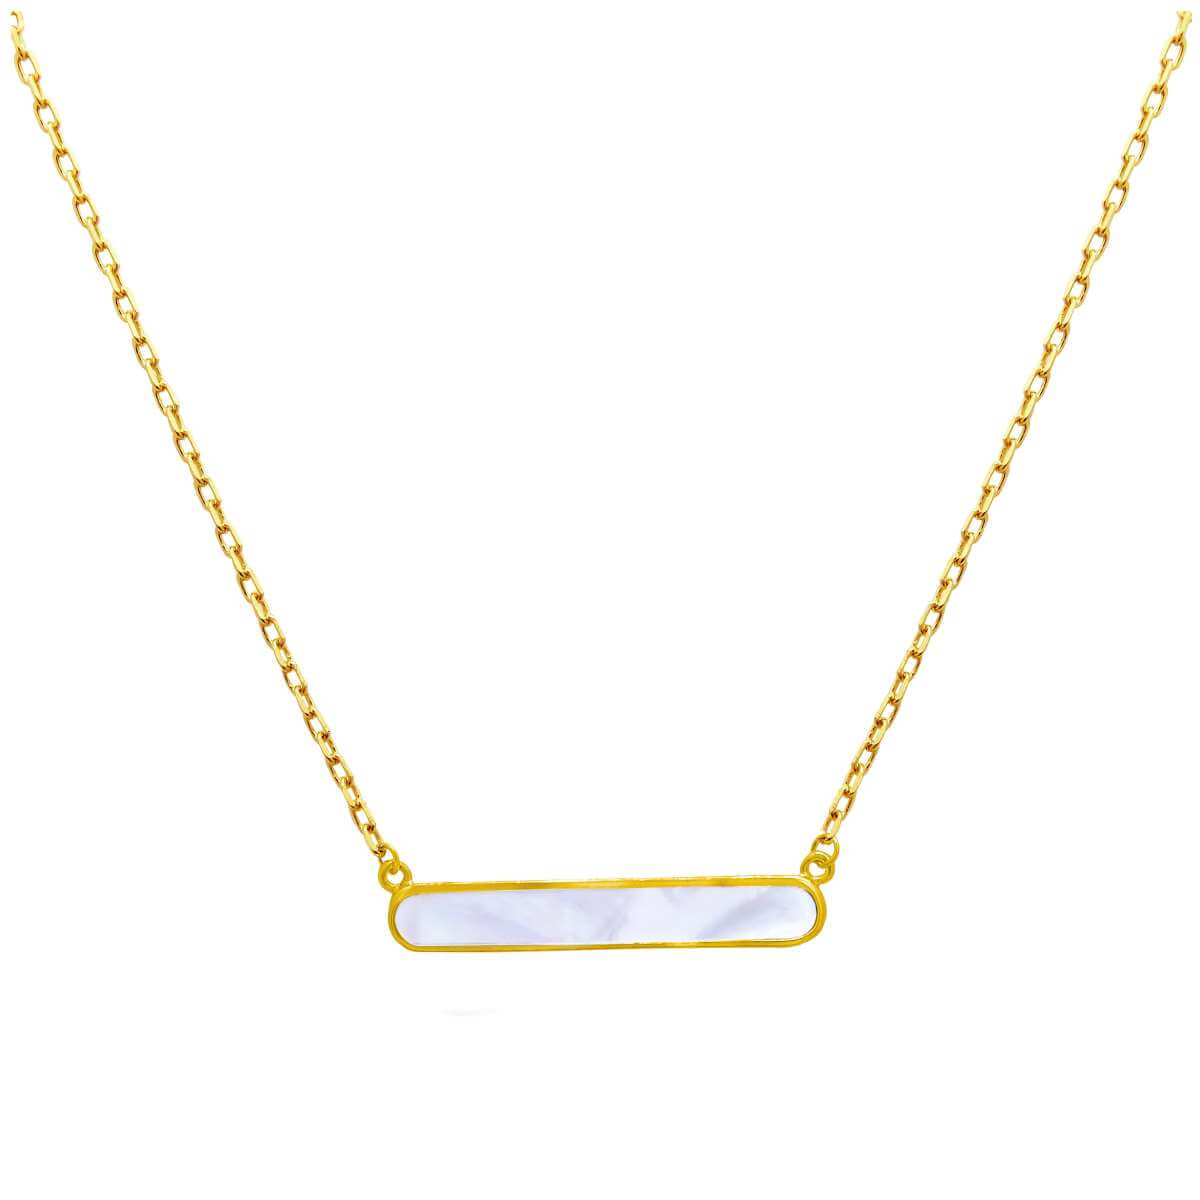 Gold Plated Sterling Silver Mother of Pearl Bar Necklace 18